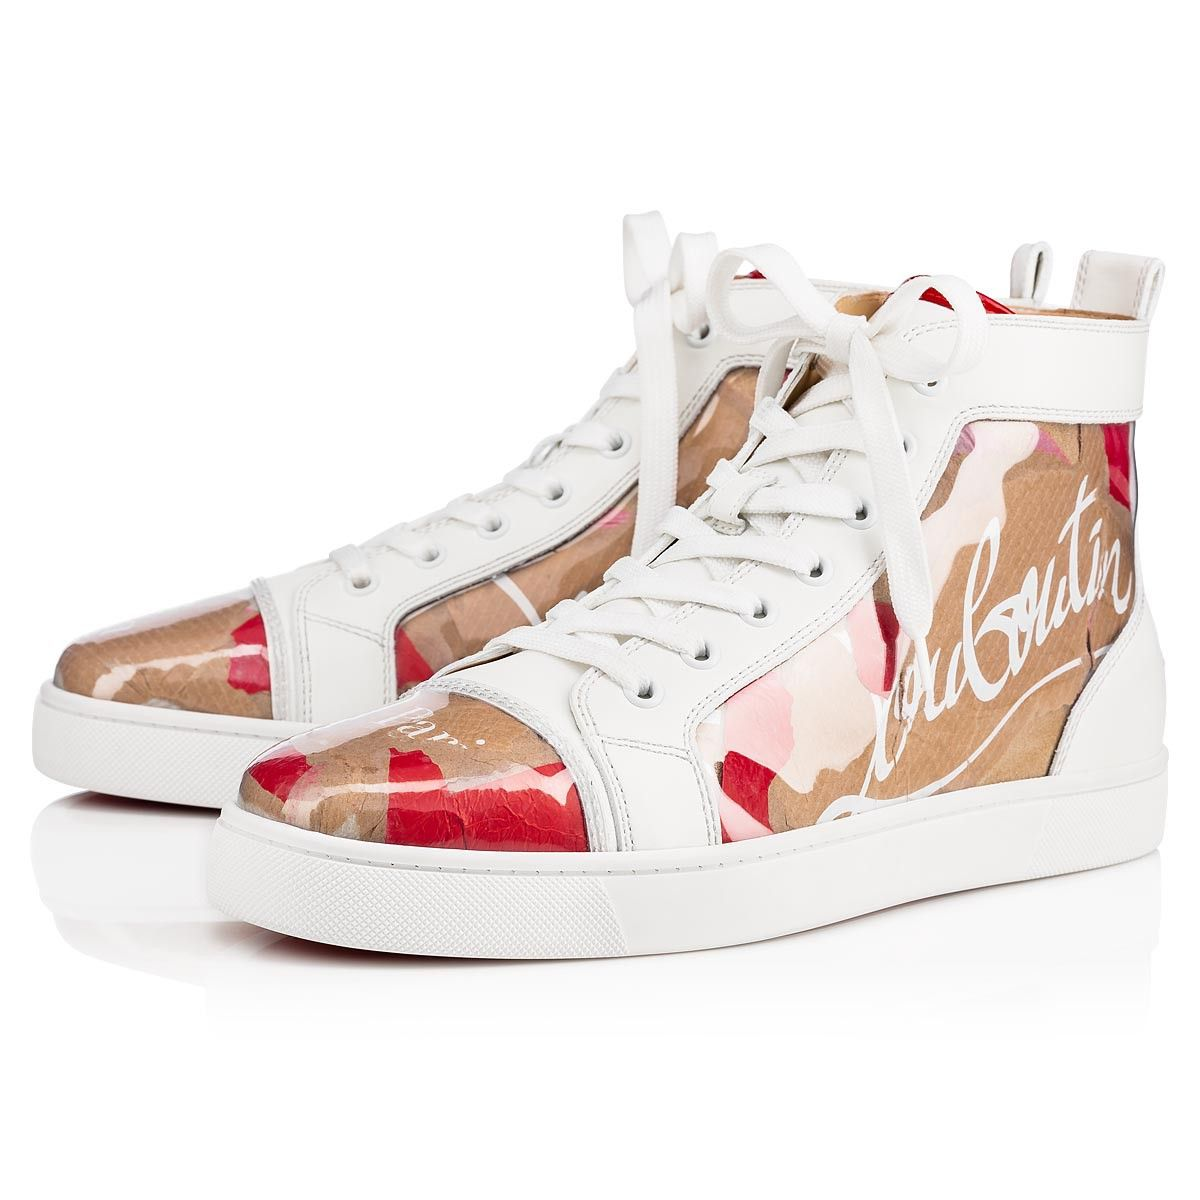 Christian Louboutin Germany Official Online Boutique LOUIS